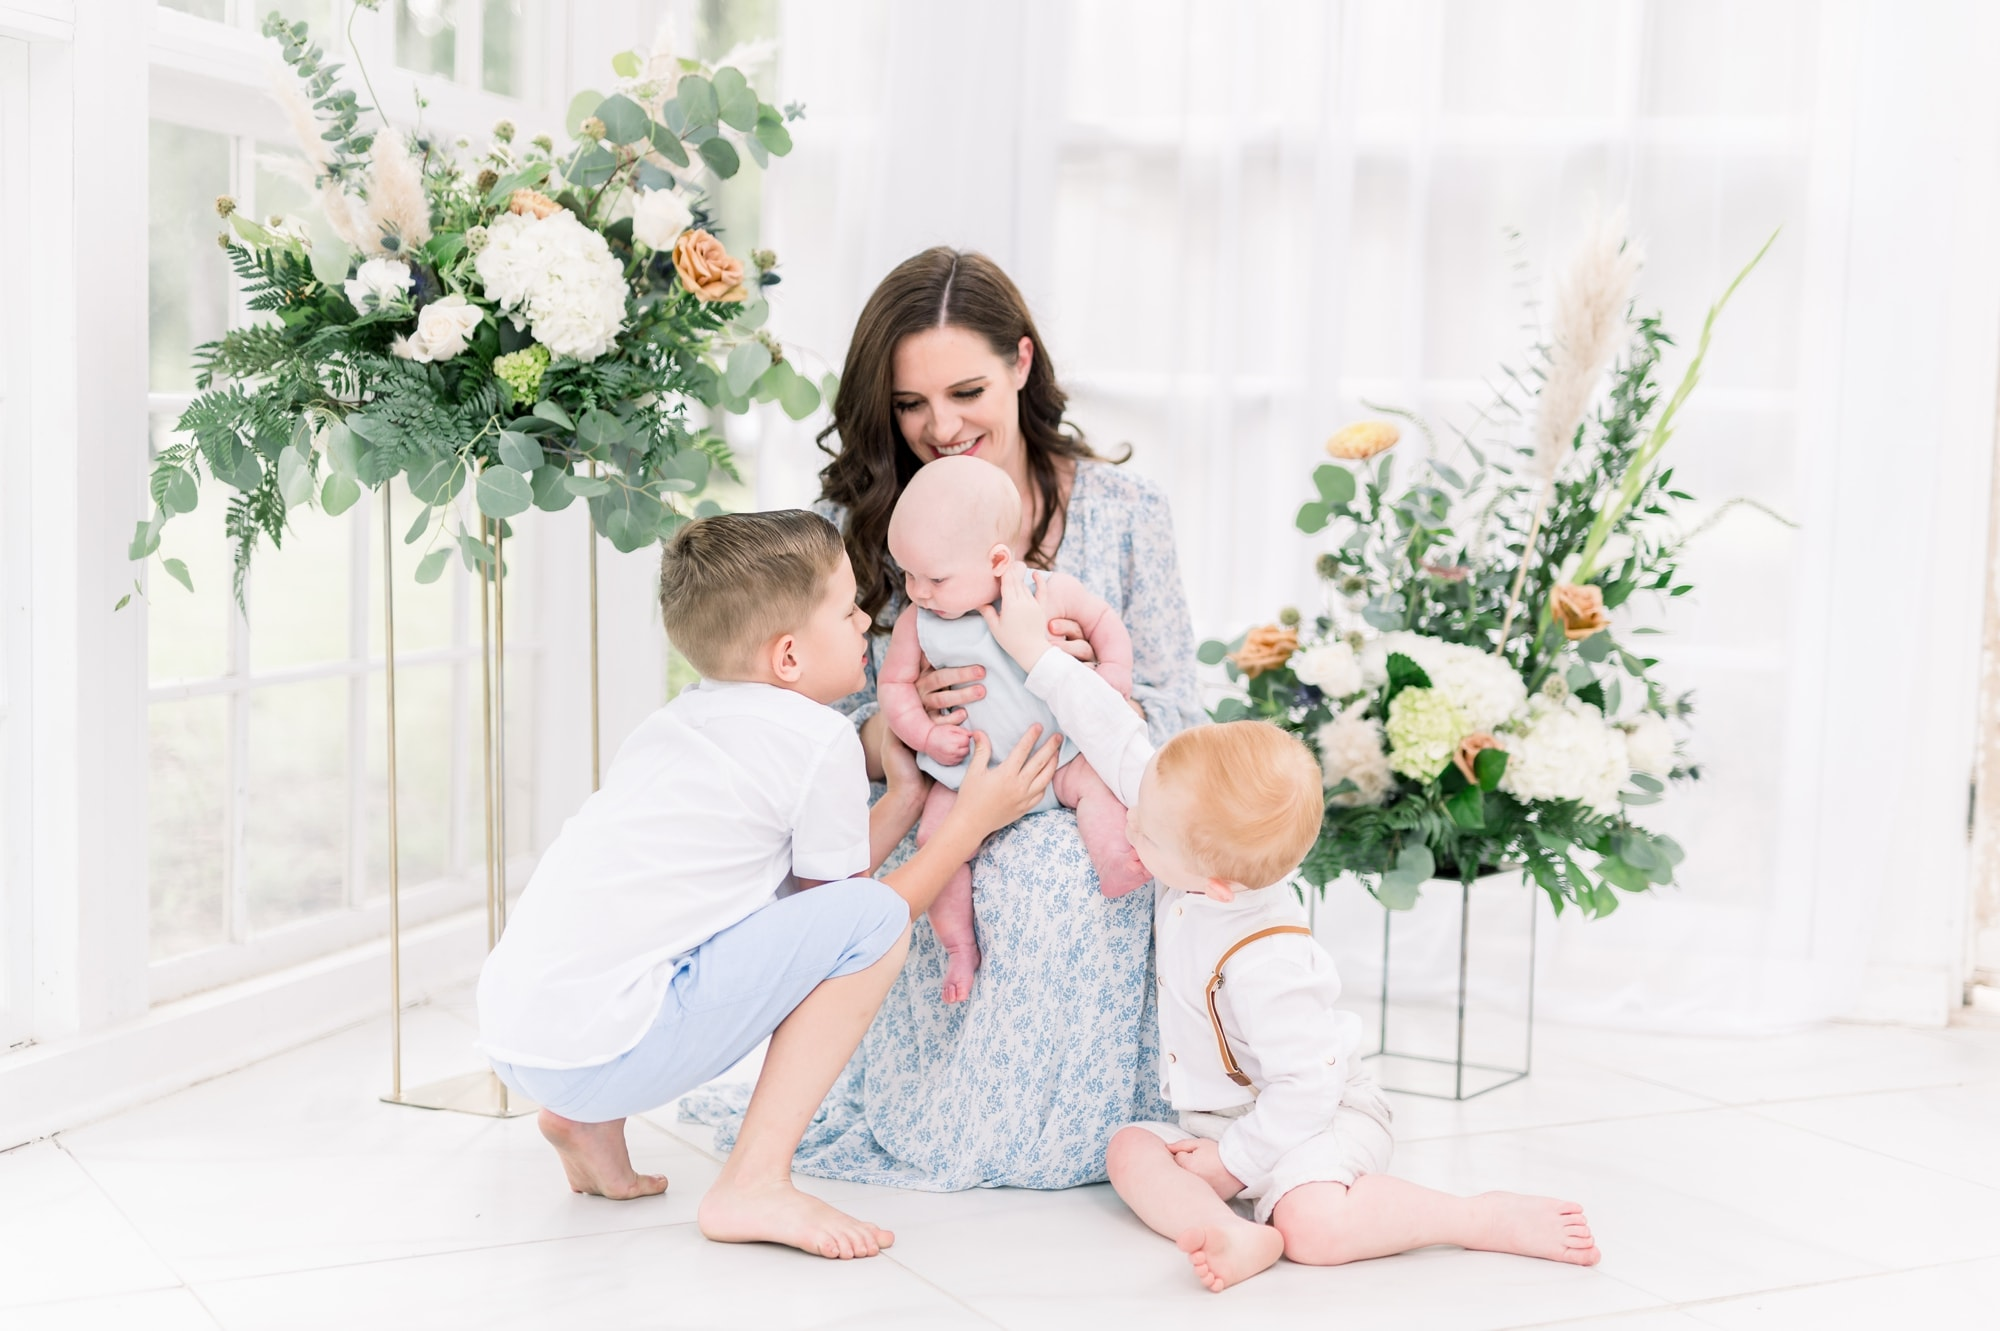 Mom cuddling with three kids in beautiful natural light studio. Photo by Dallas family photographer, Aimee Hamilton Photography.